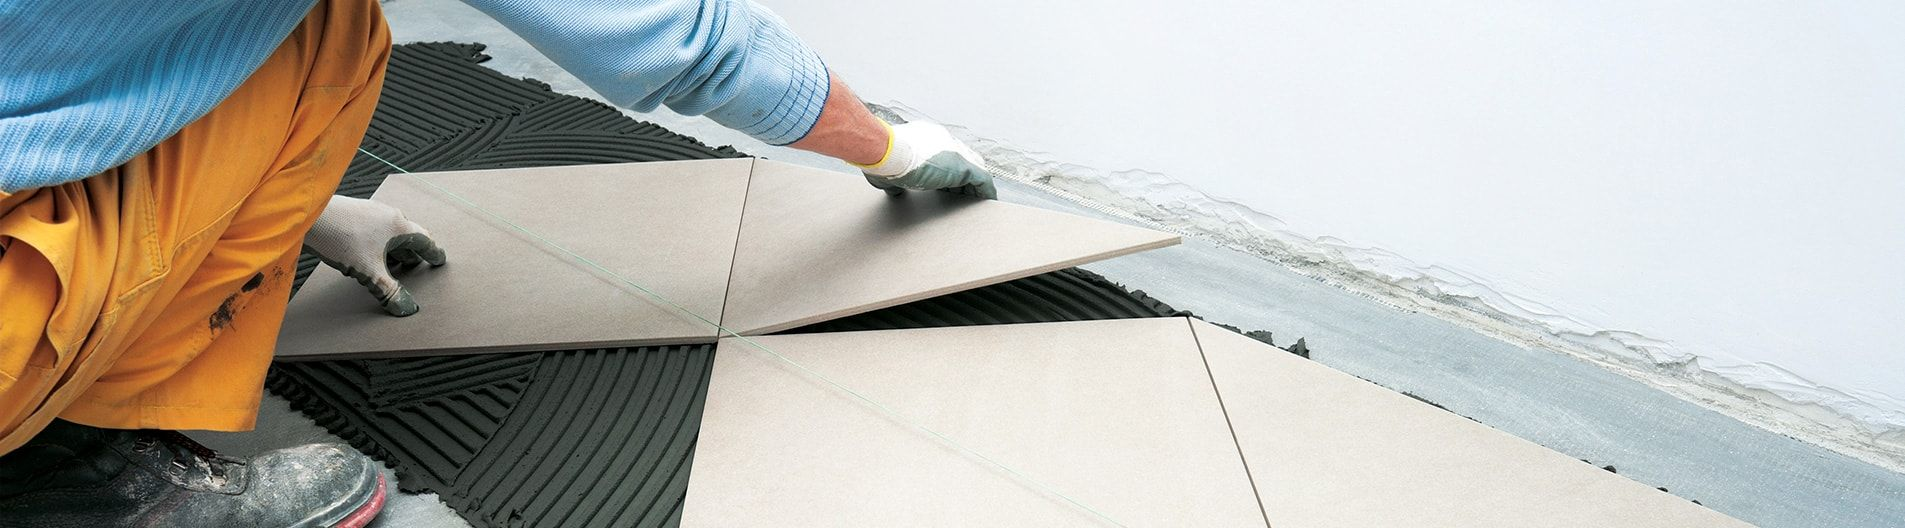 Tile-on-Tile Application for Wall Dampness - Asian Paints SmartCare